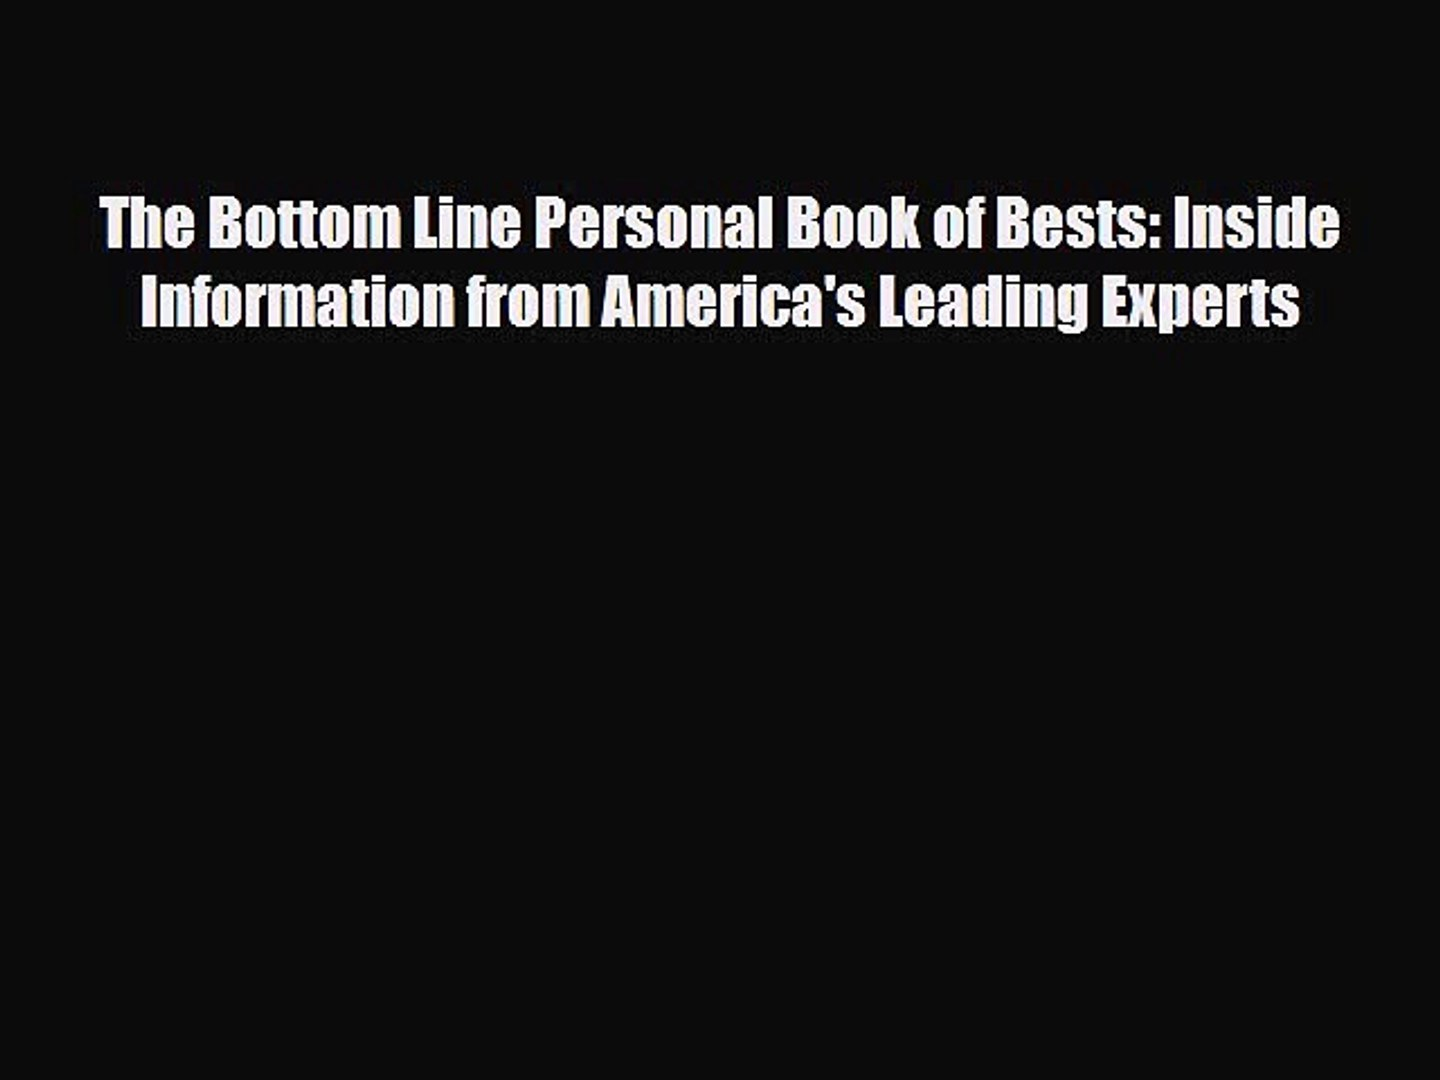 Download The Bottom Line Personal Book of Bests: Inside Information from America's Leading